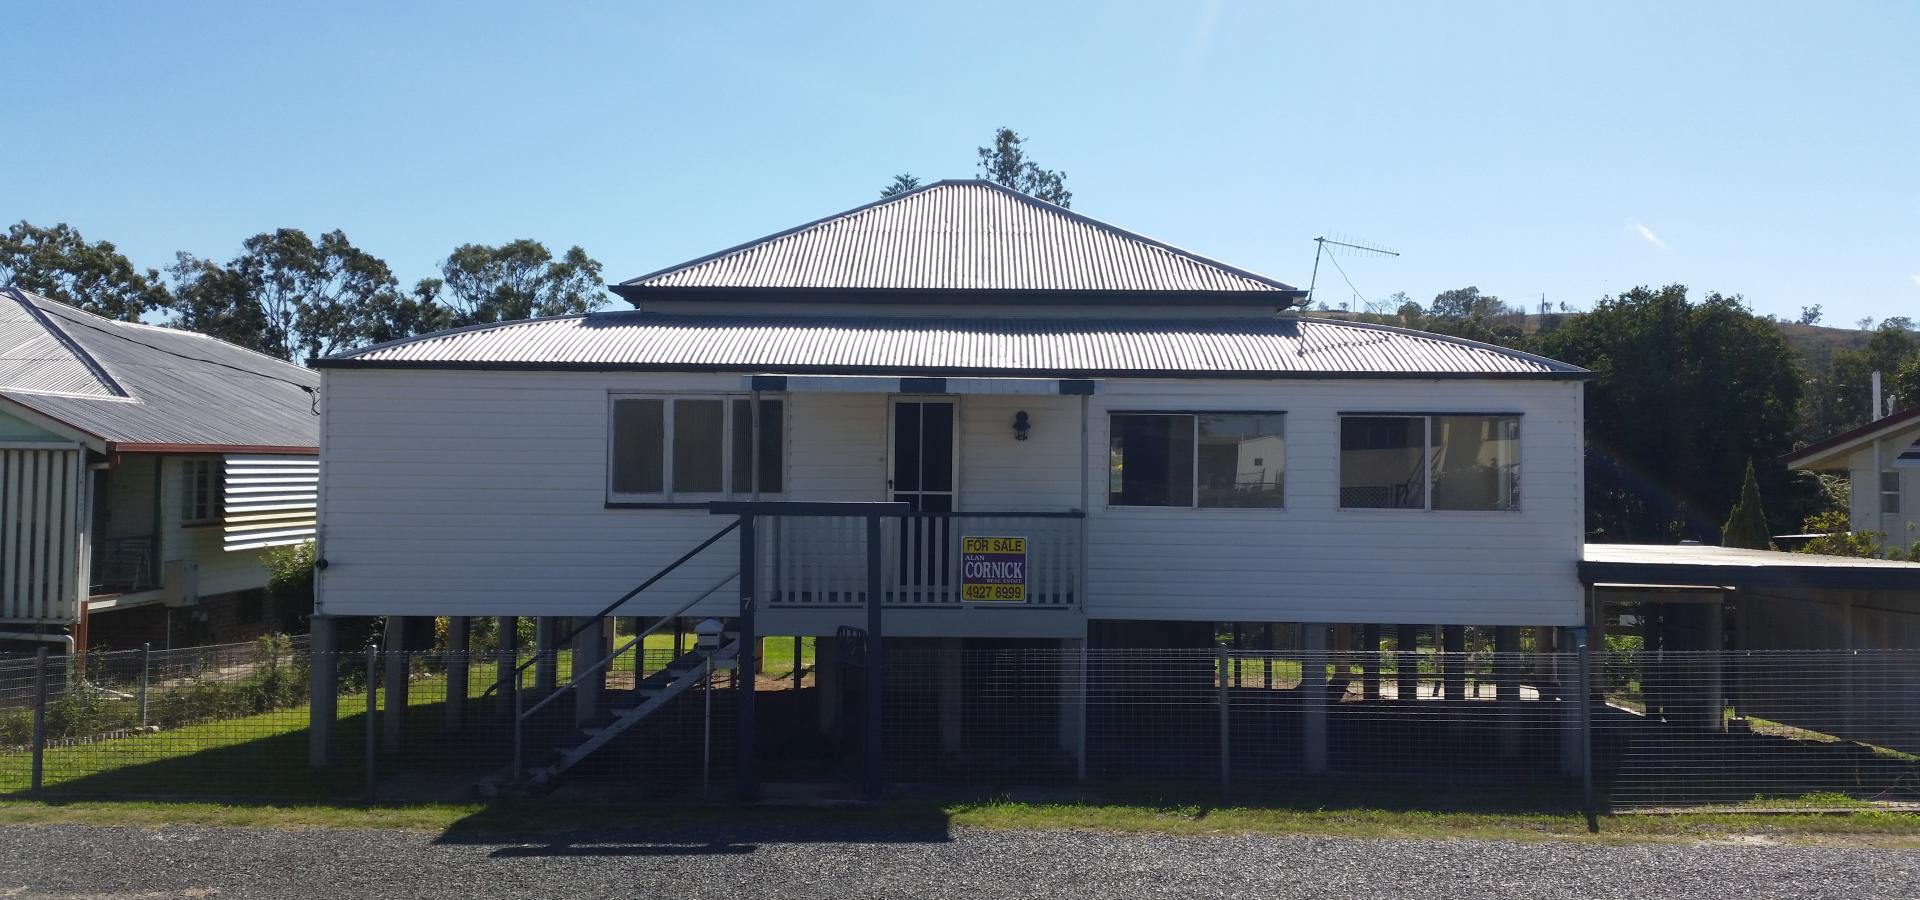 Investor Special !!! Renovated 5 Bedroom Home - 7% returns